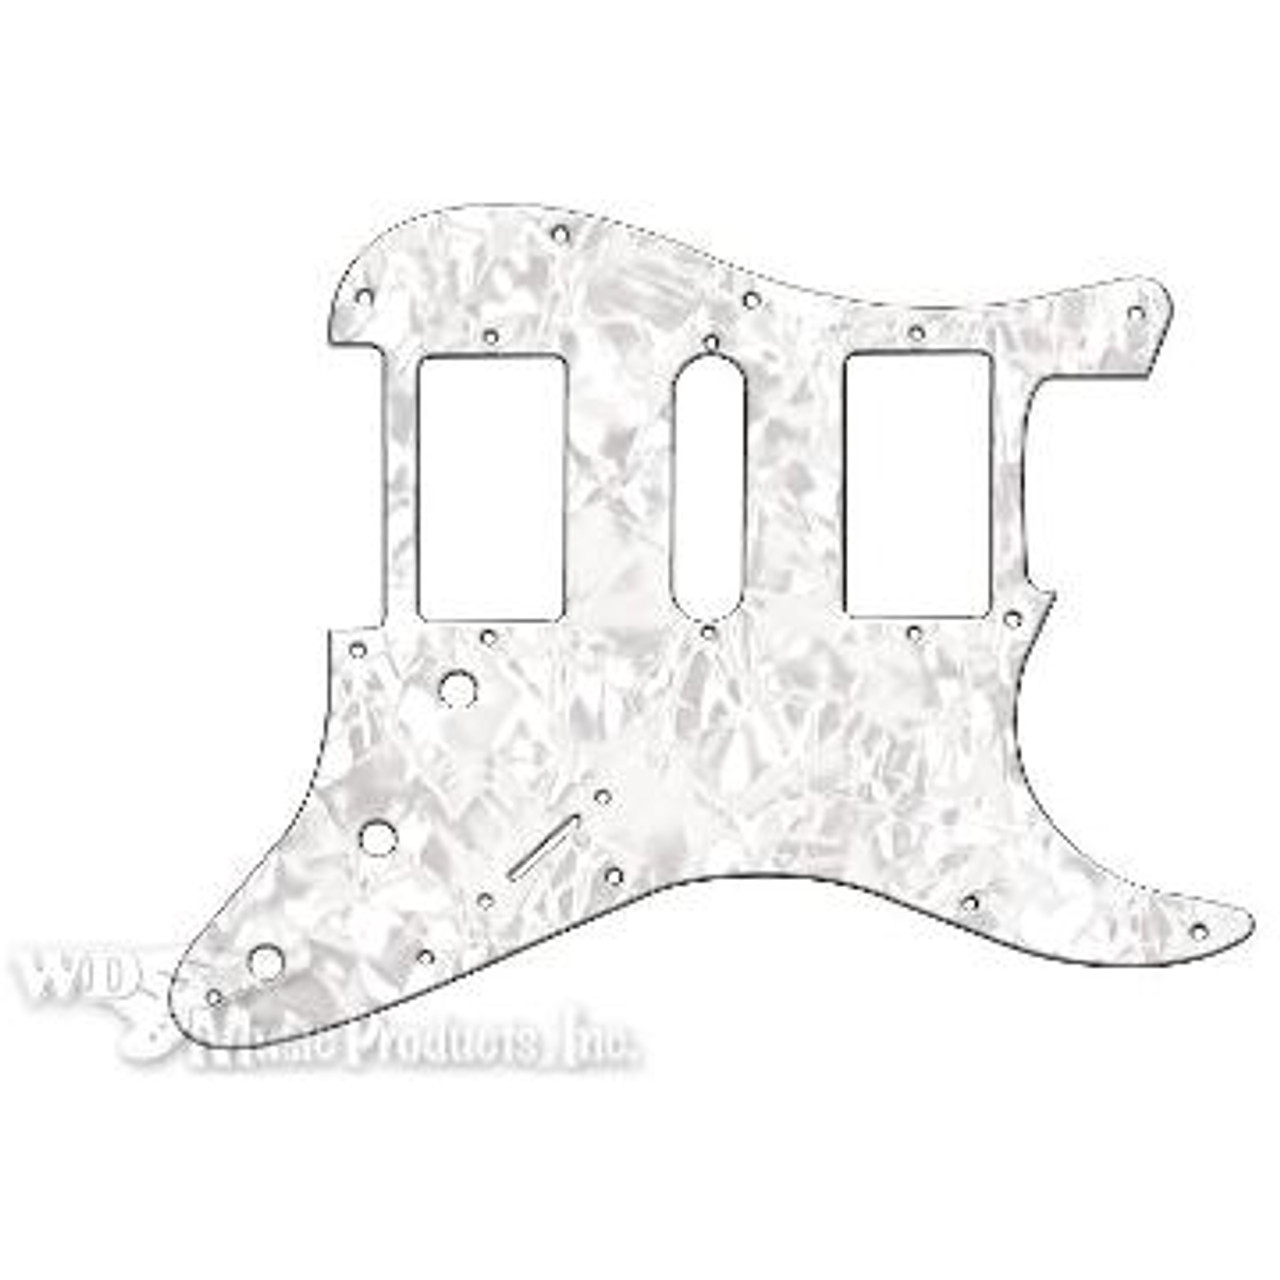 Strat Hum/Single/Hum Pickguard-3Ply White Pearl